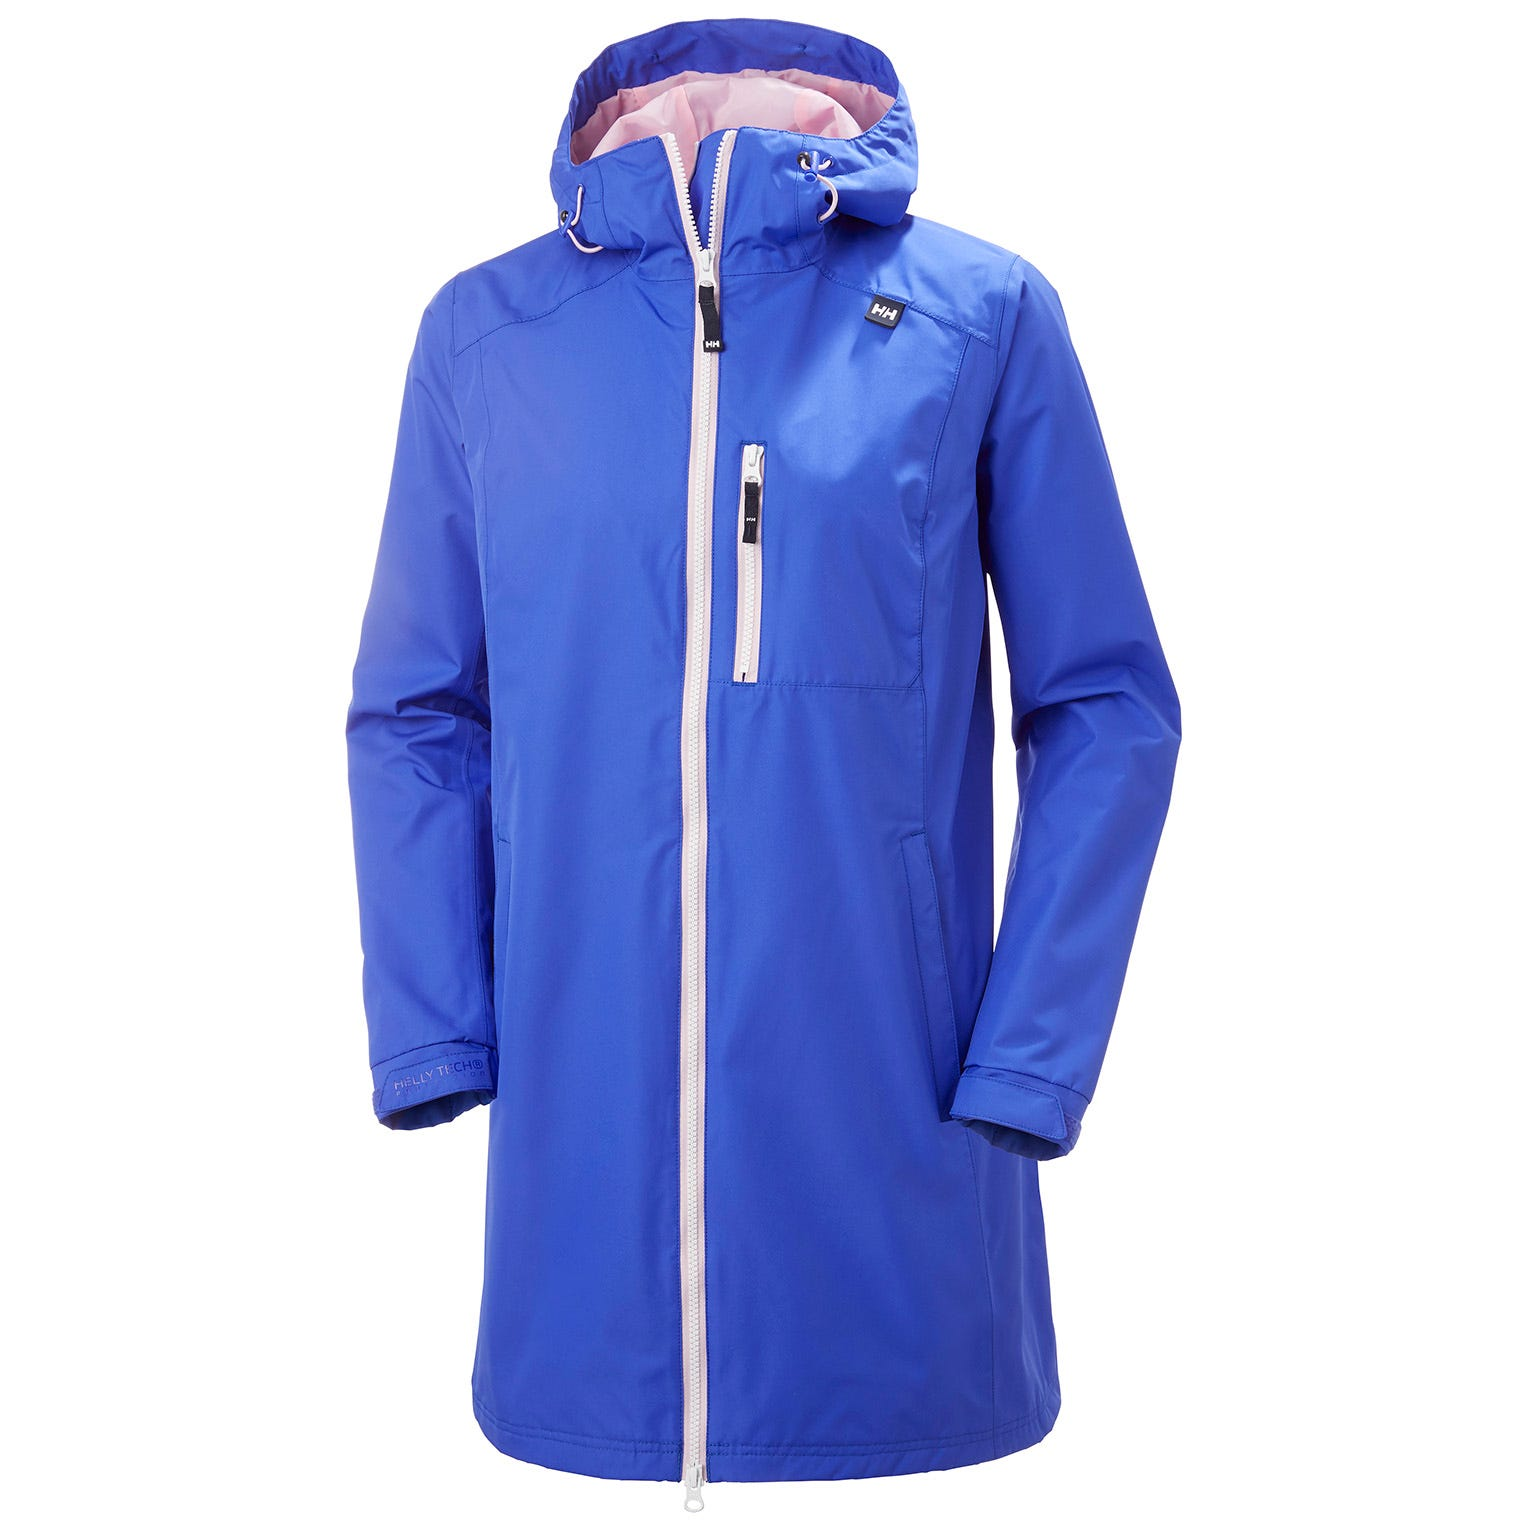 Helly Hansen Womens Rain Jacket Blue XXXL